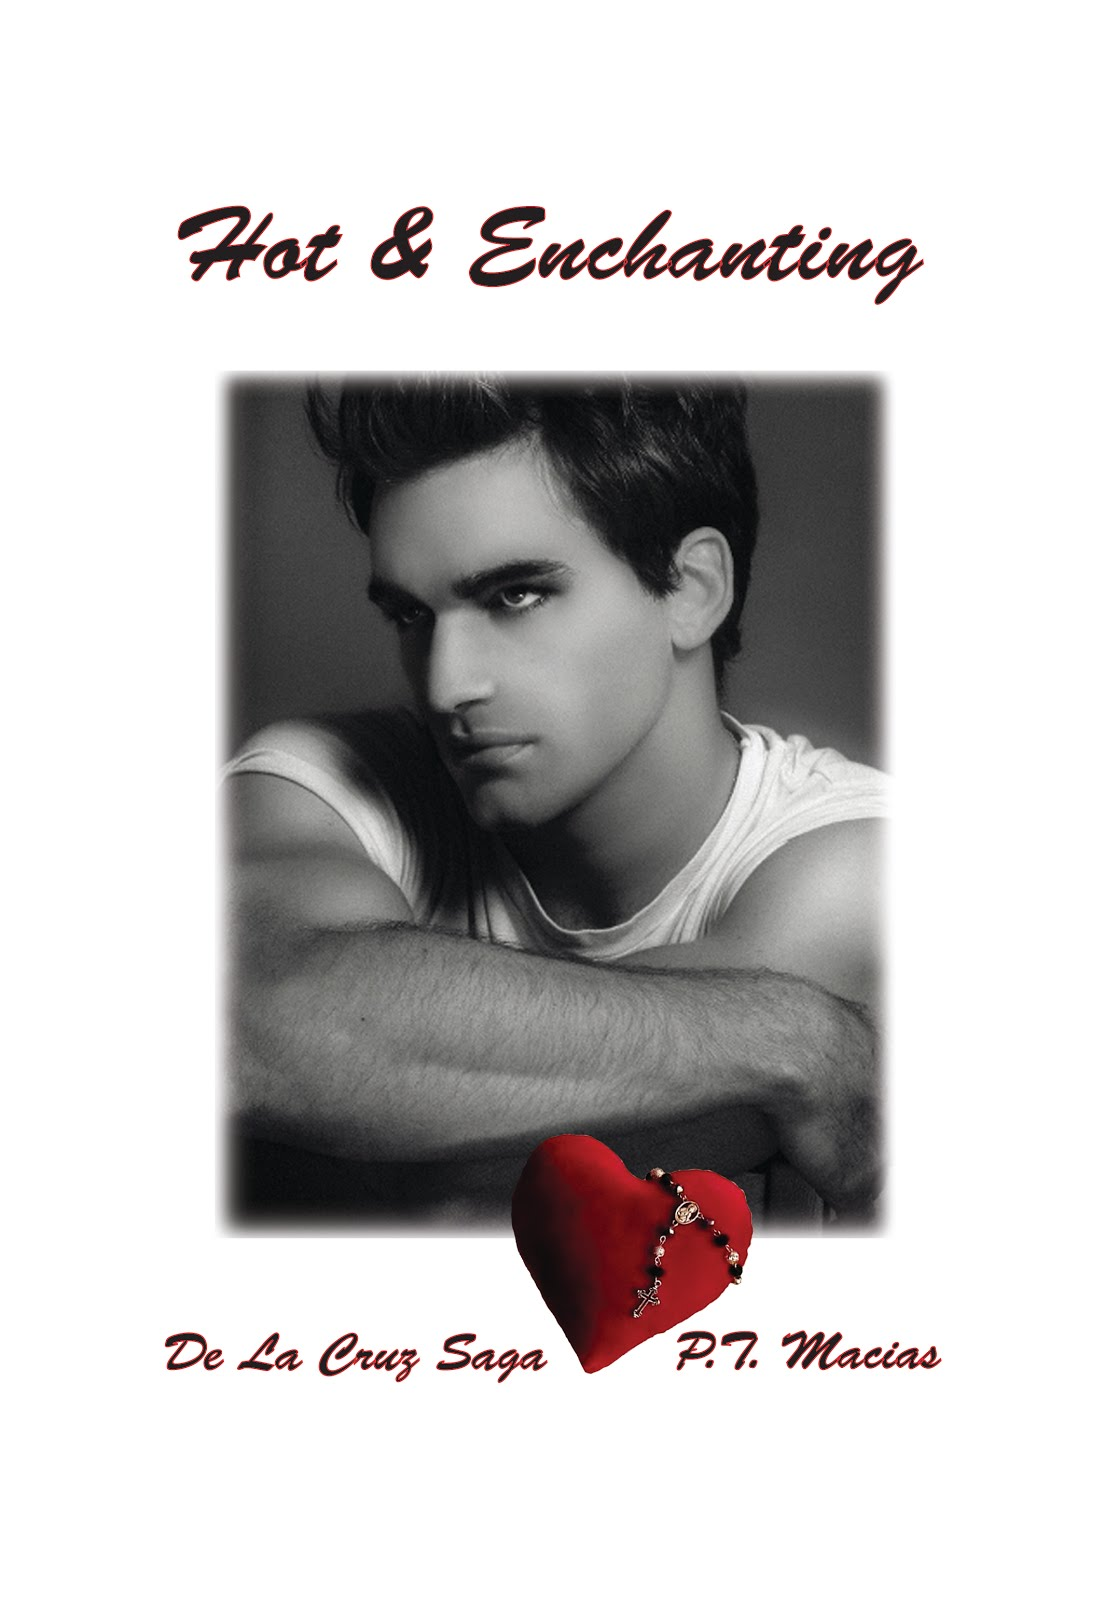 Hot & Enchanting, De La Cruz Saga